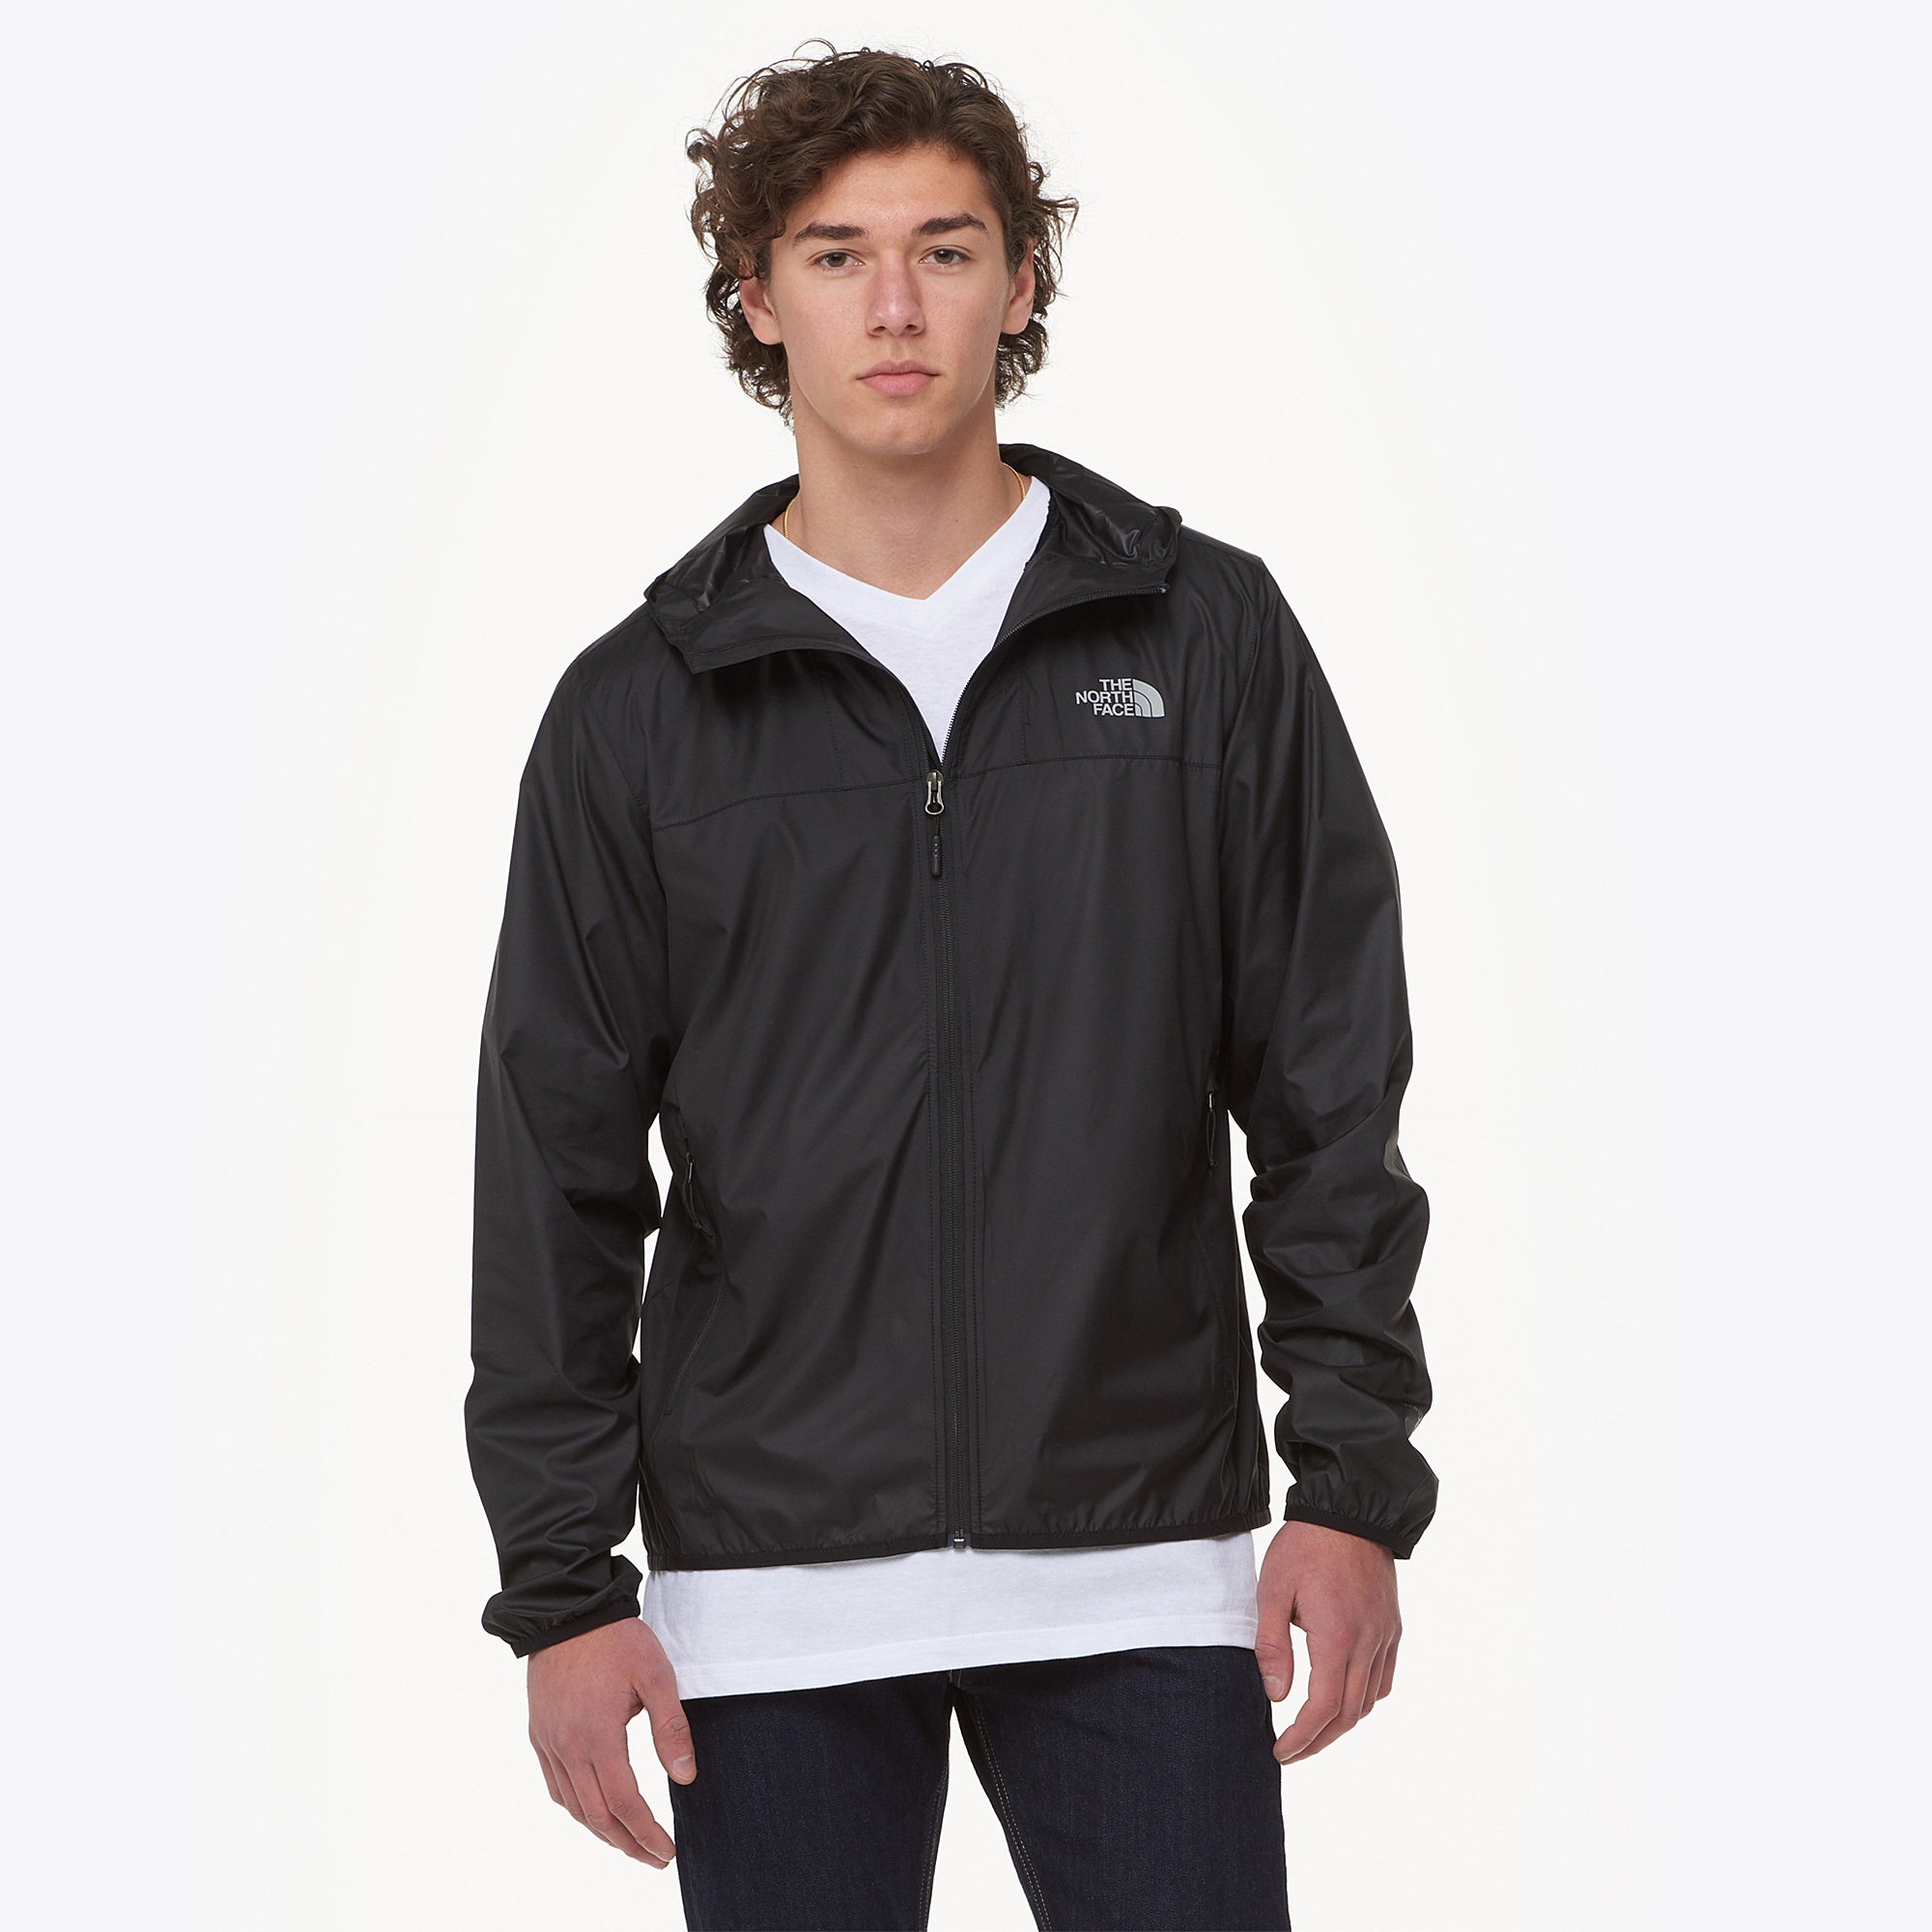 f8c00f040b The north face cyclone wind jacket mens casual clothing jpg 1500x1500 North  face wind jacket